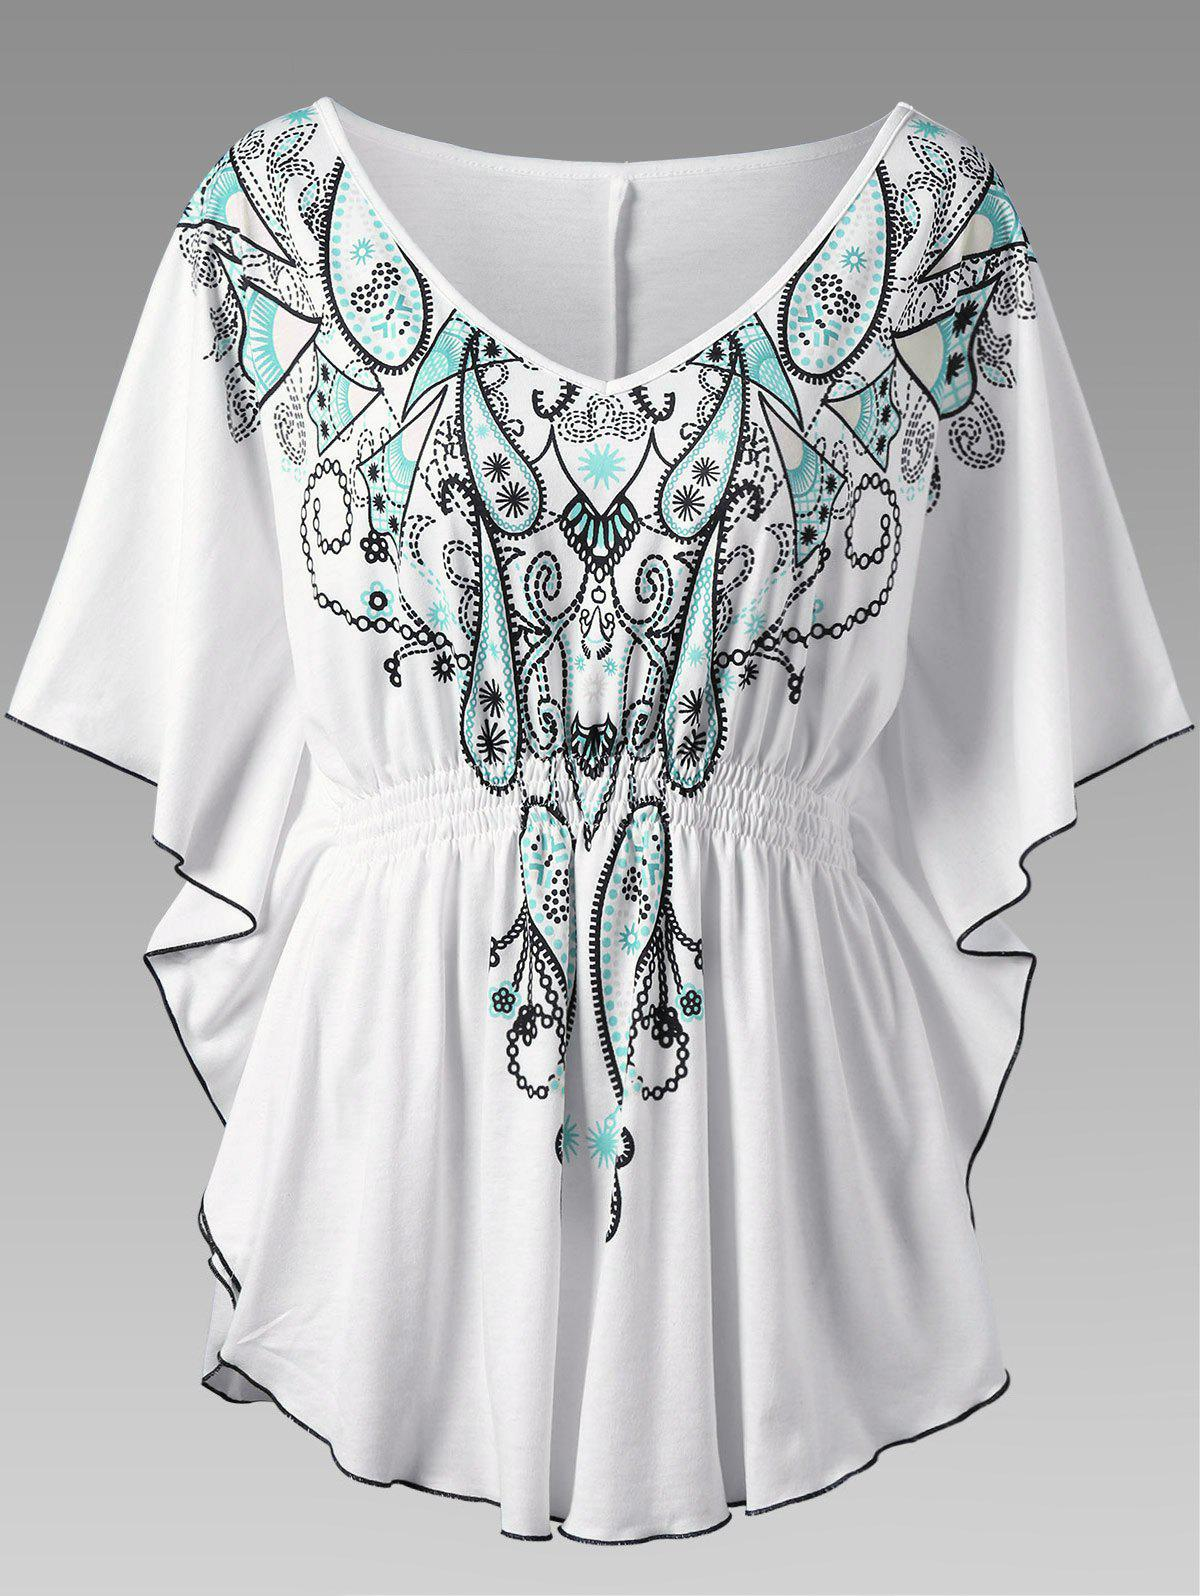 Butterfly Sleeve Graphic Asymmetrical Plus Size TopWOMEN<br><br>Size: 5XL; Color: WHITE; Material: Polyester,Spandex; Shirt Length: Long; Sleeve Length: Three Quarter; Collar: V-Neck; Style: Fashion; Season: Fall,Spring,Summer; Sleeve Type: Butterfly Sleeve; Pattern Type: Print; Weight: 0.3500kg; Package Contents: 1 x Top;